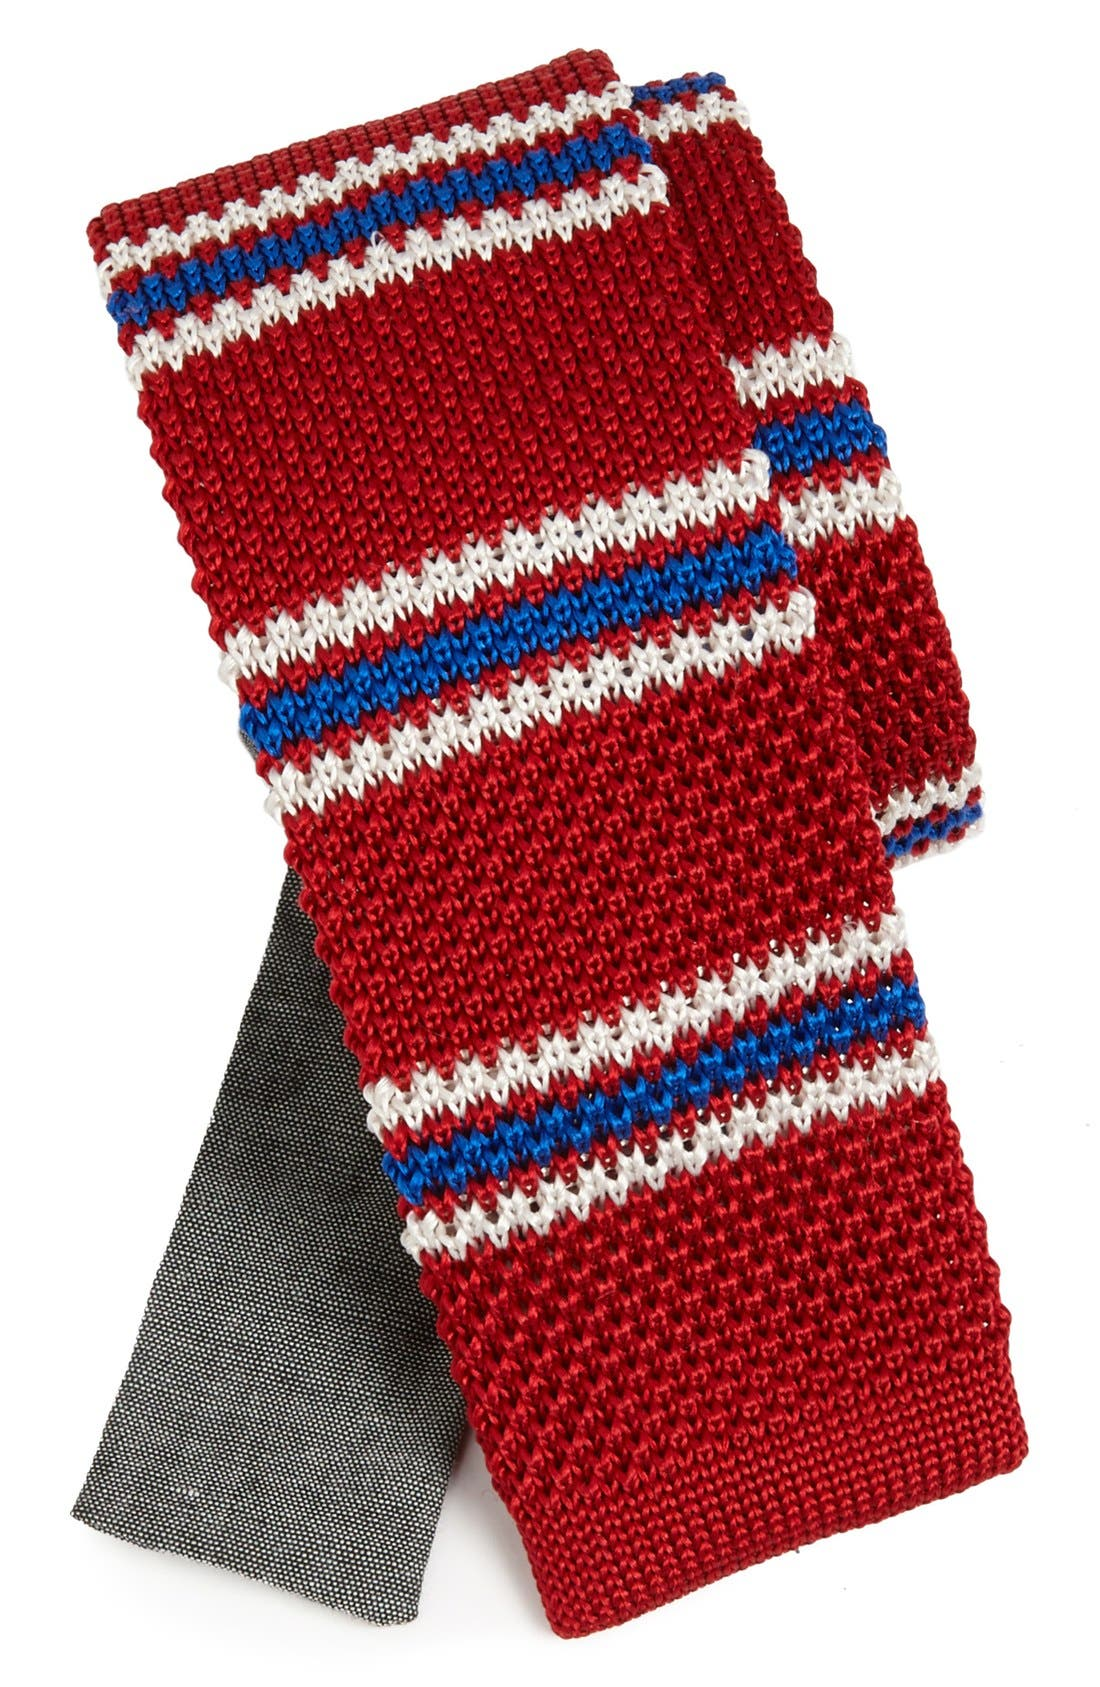 Alternate Image 1 Selected - EDIT by The Tie Bar Stripe Knit Silk Tie (Nordstrom Exclusive)